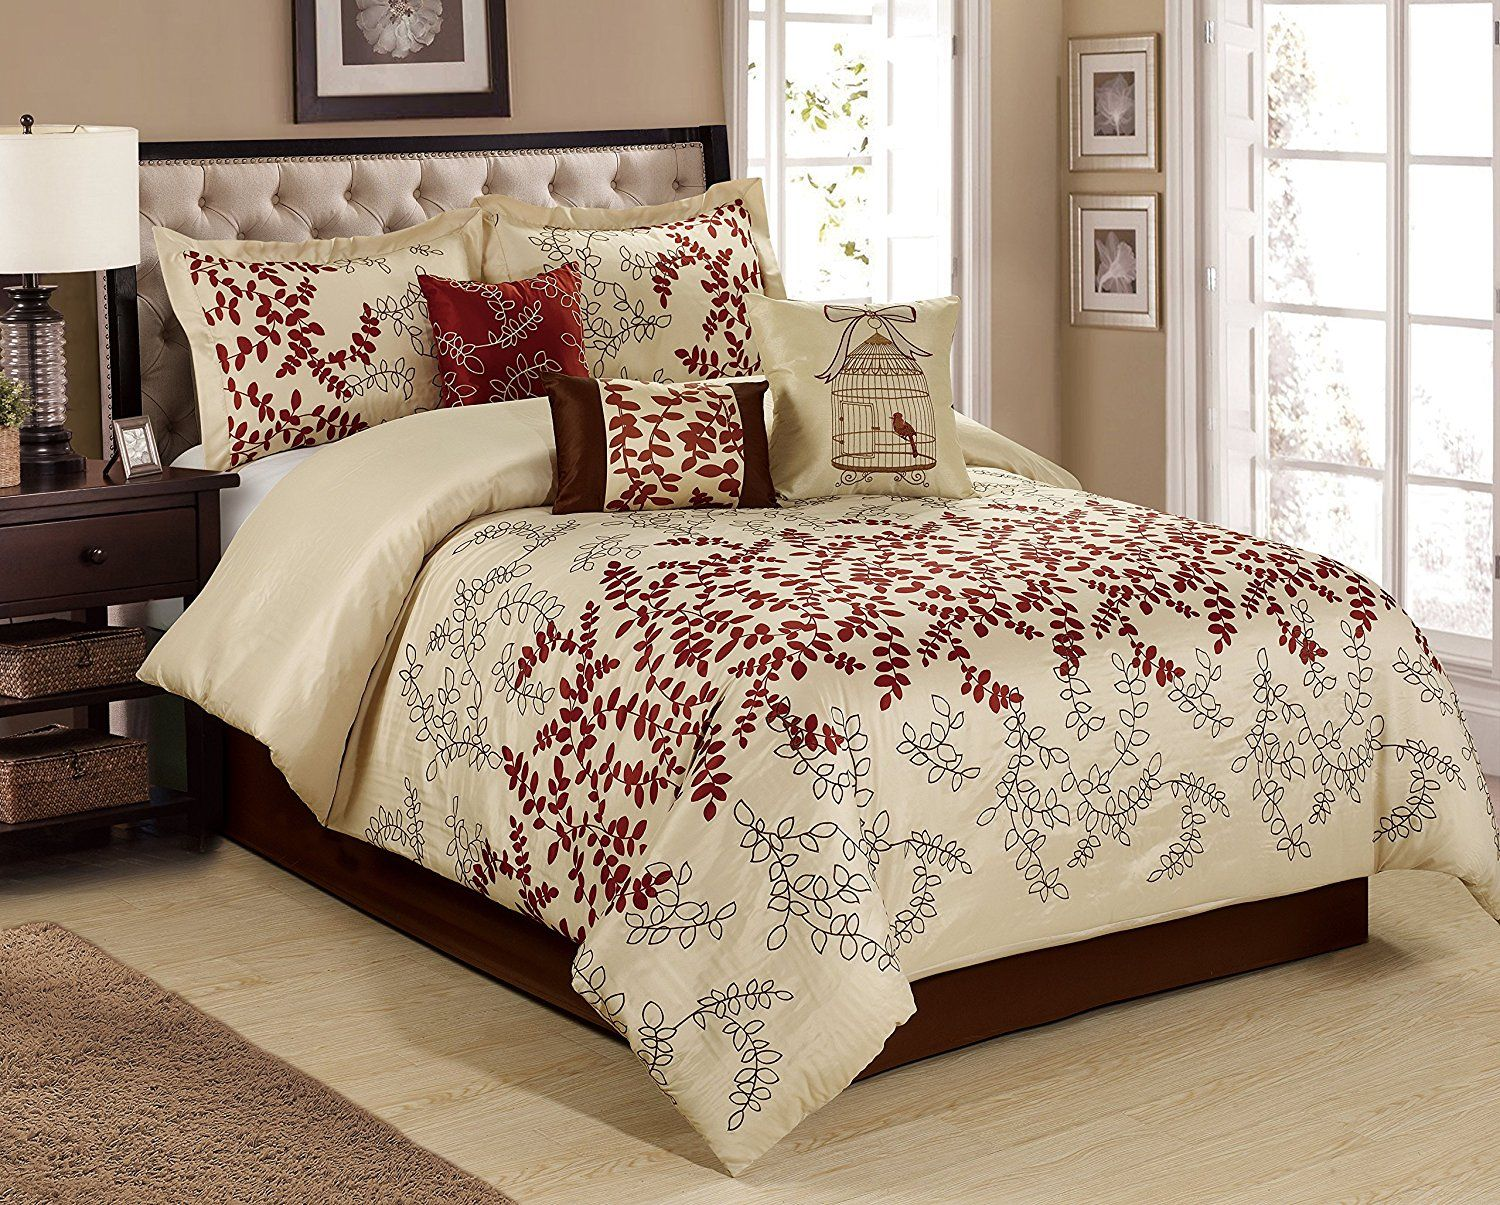 Burgundy Bedding Sets 7 Piece Saratoga Full Of Leaves Embroidered And Print Comforter Set Queen King Cal King S Comforter Sets Bedroom Sets Burgundy Bedroom